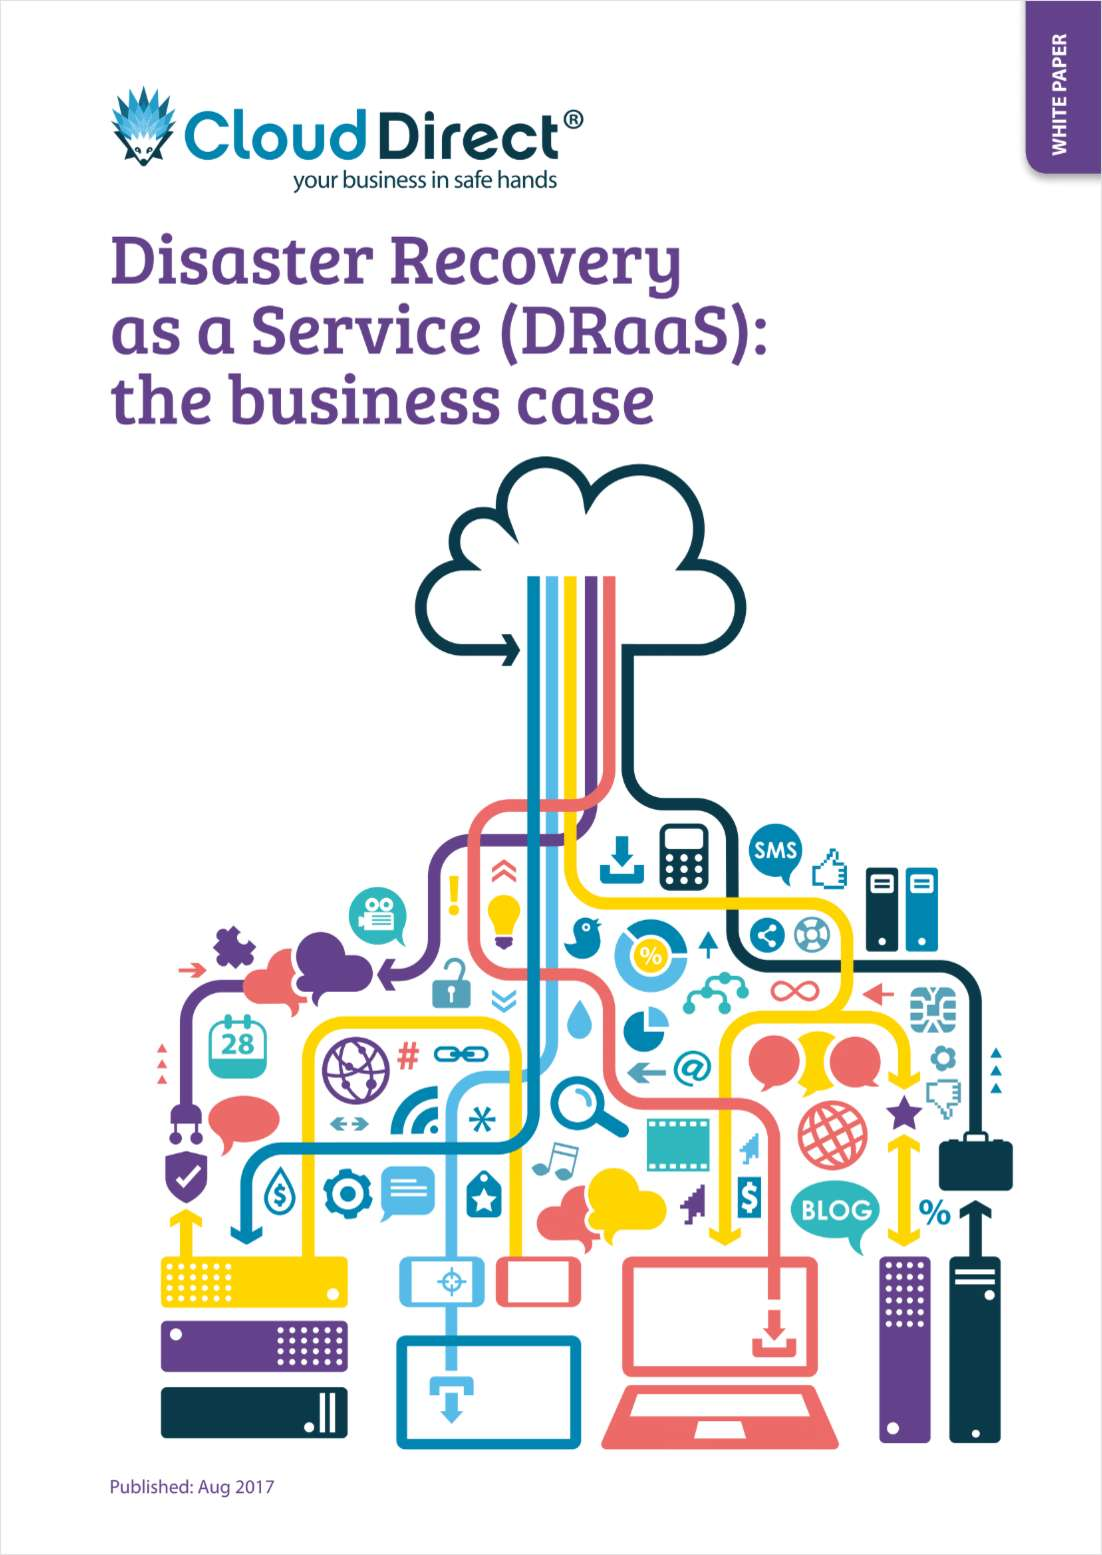 Whitepaper - Disaster Recovery as a Service (DRaaS): the business case